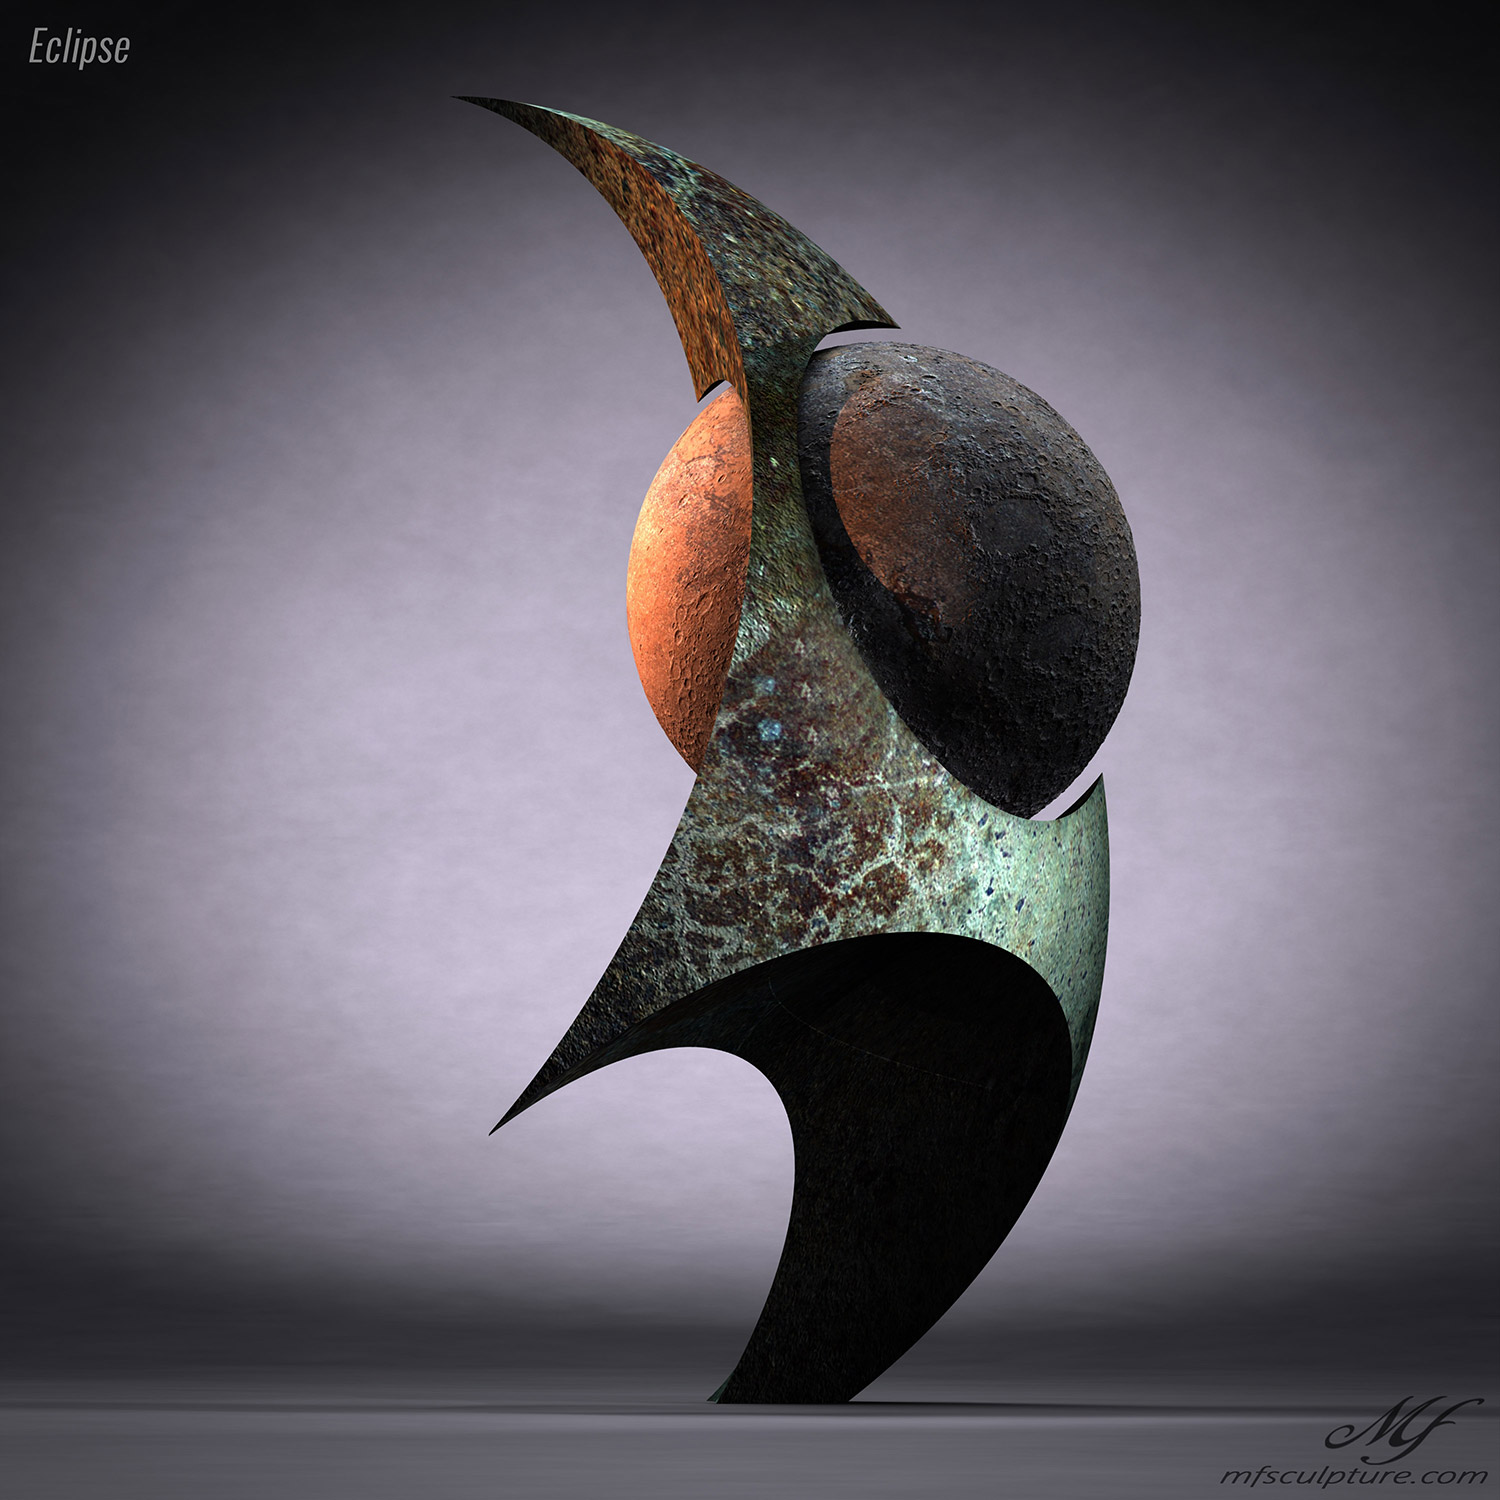 Eclipse Contemporary Sculpture Mike Fields Science 3